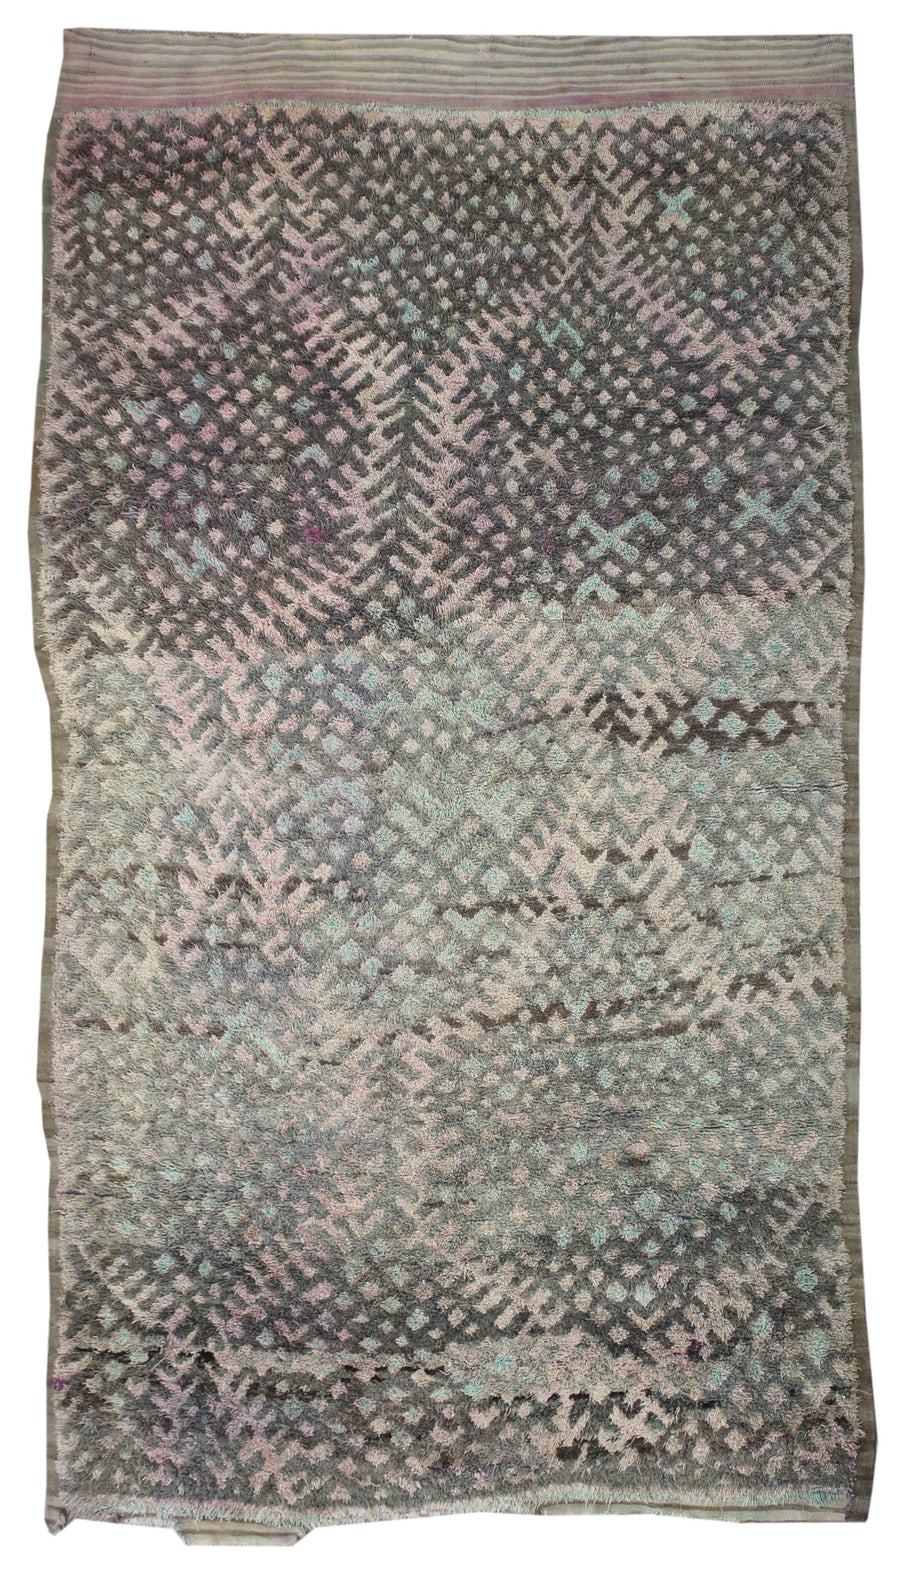 MOROCCAN HANDKNOTTED RUG, 61925